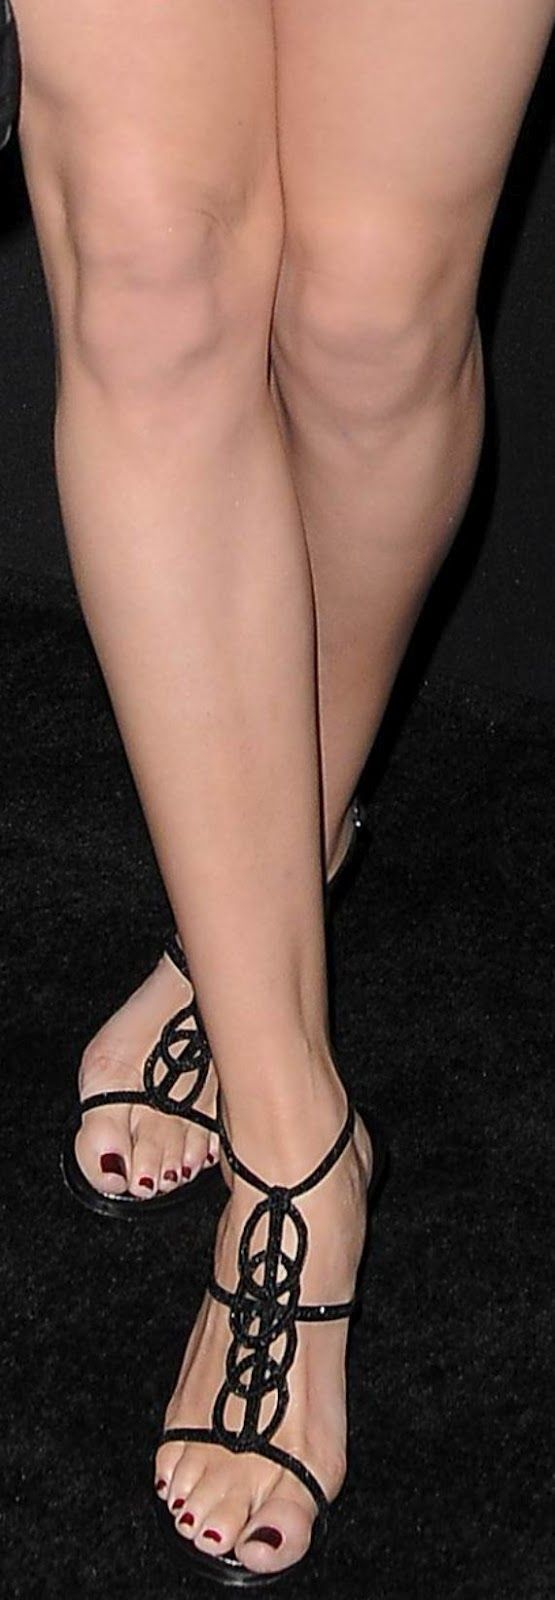 Worn by Danielle Panabaker.